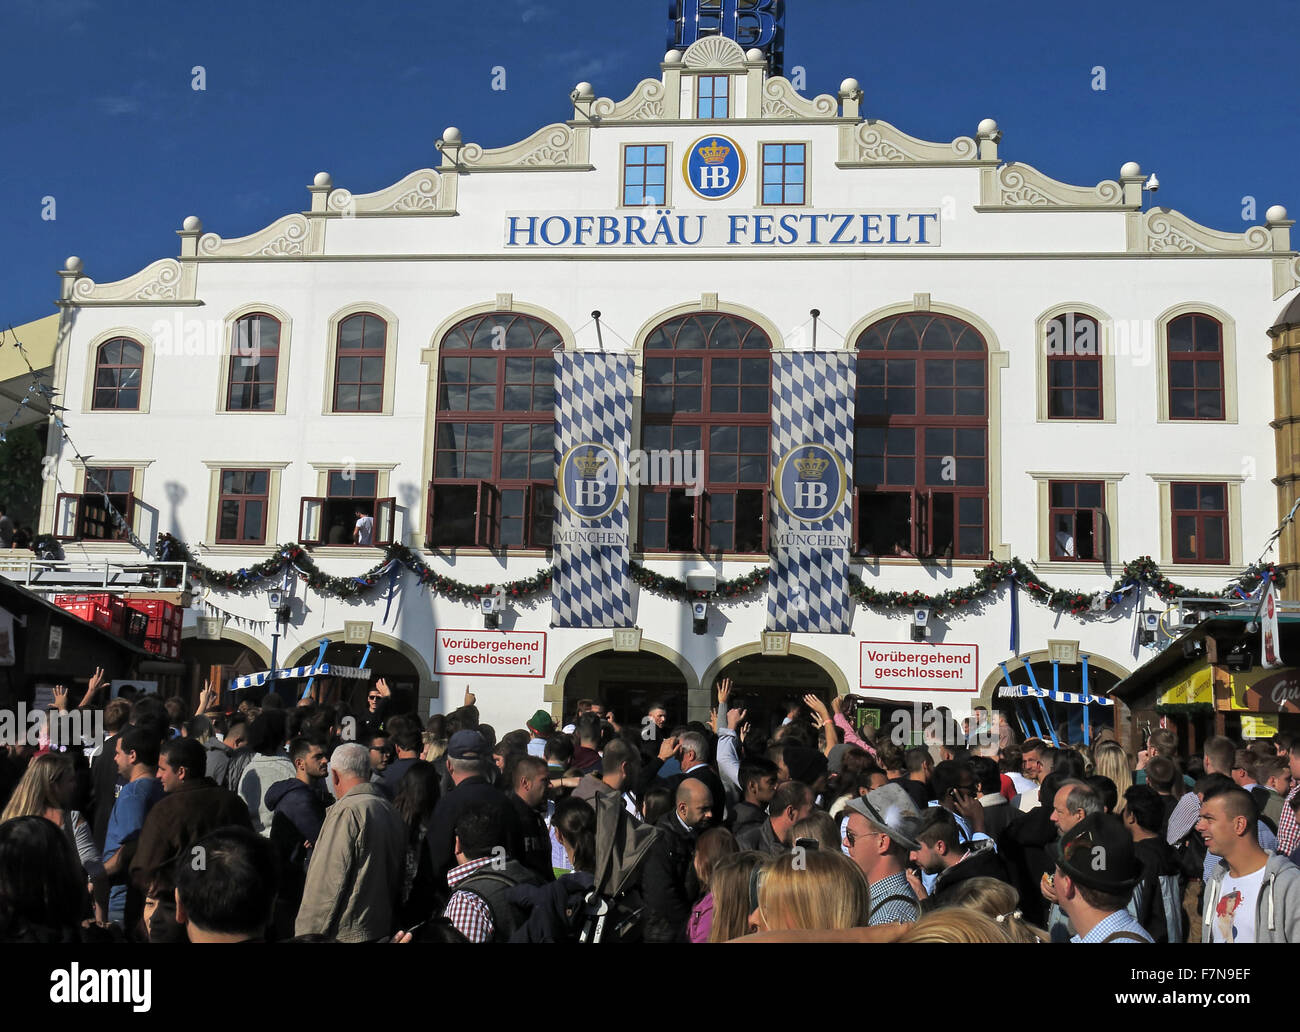 Munich Oktoberfest in Germany  Volksfest beer festival and travelling funfair, Hofbrau Festzelt - Stock Image